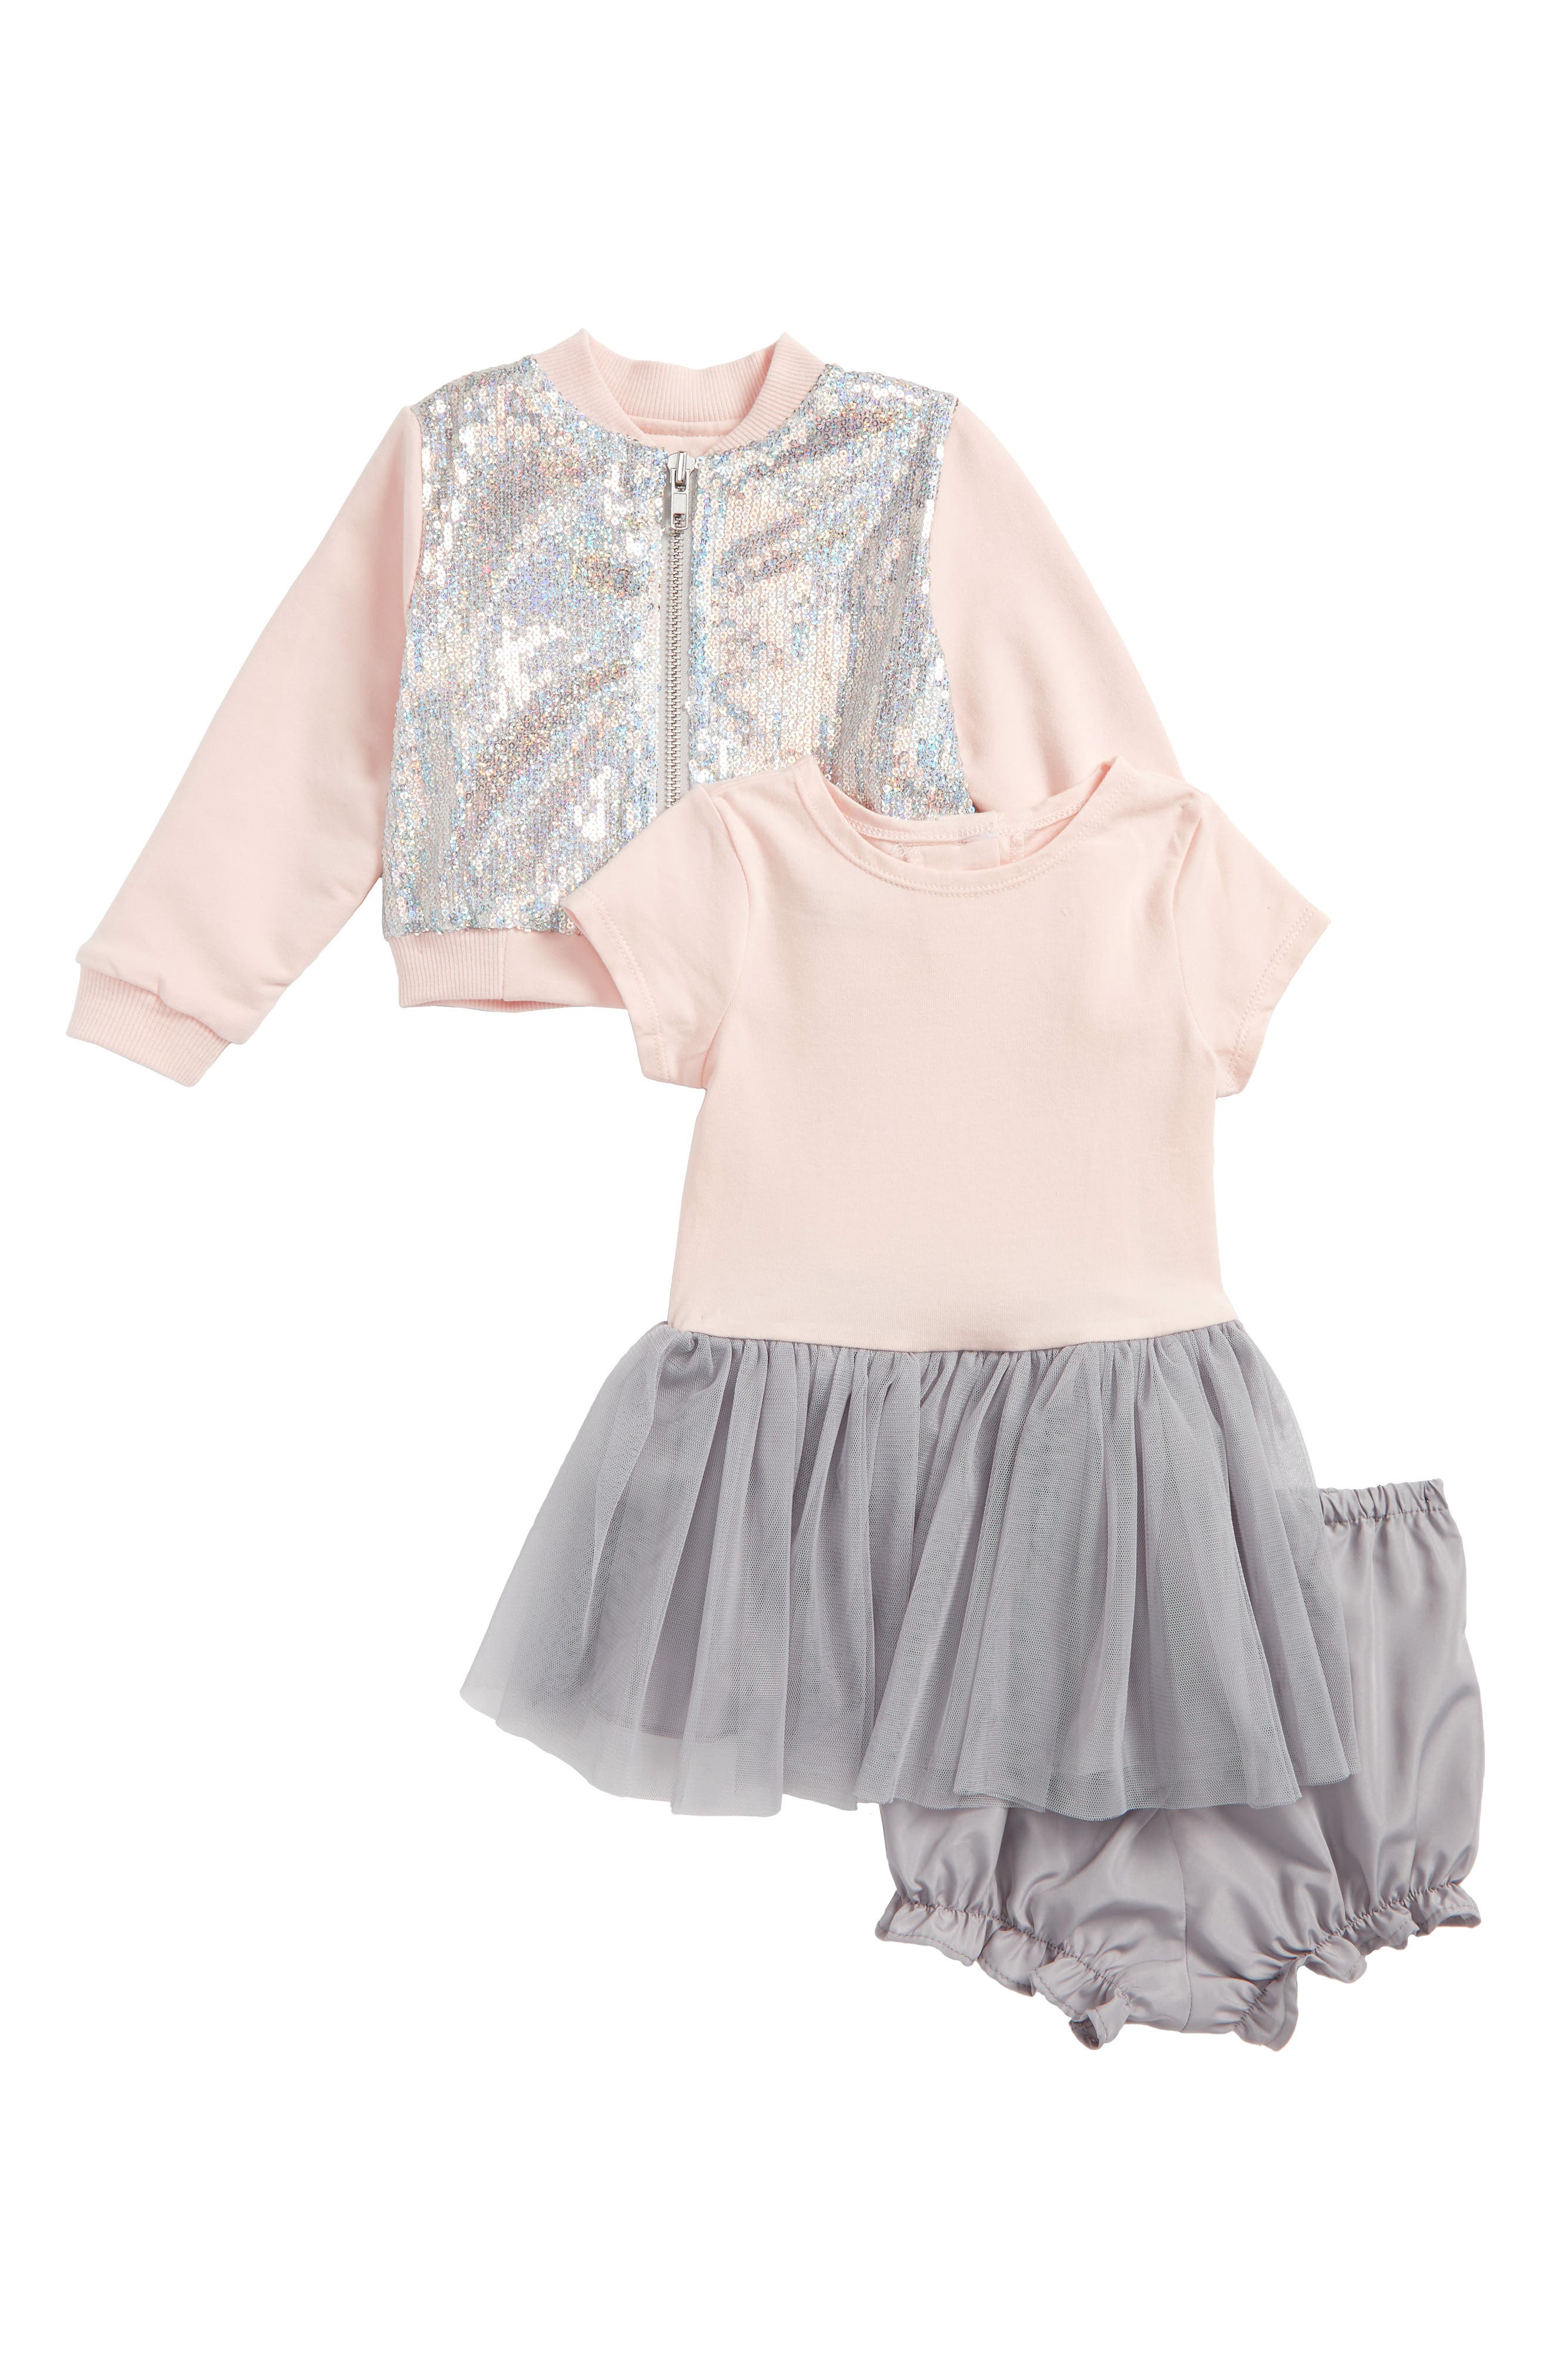 Sequin Bomber Jacket & Tulle Dress Set,                             Main thumbnail 1, color,                             Silver/ Pink